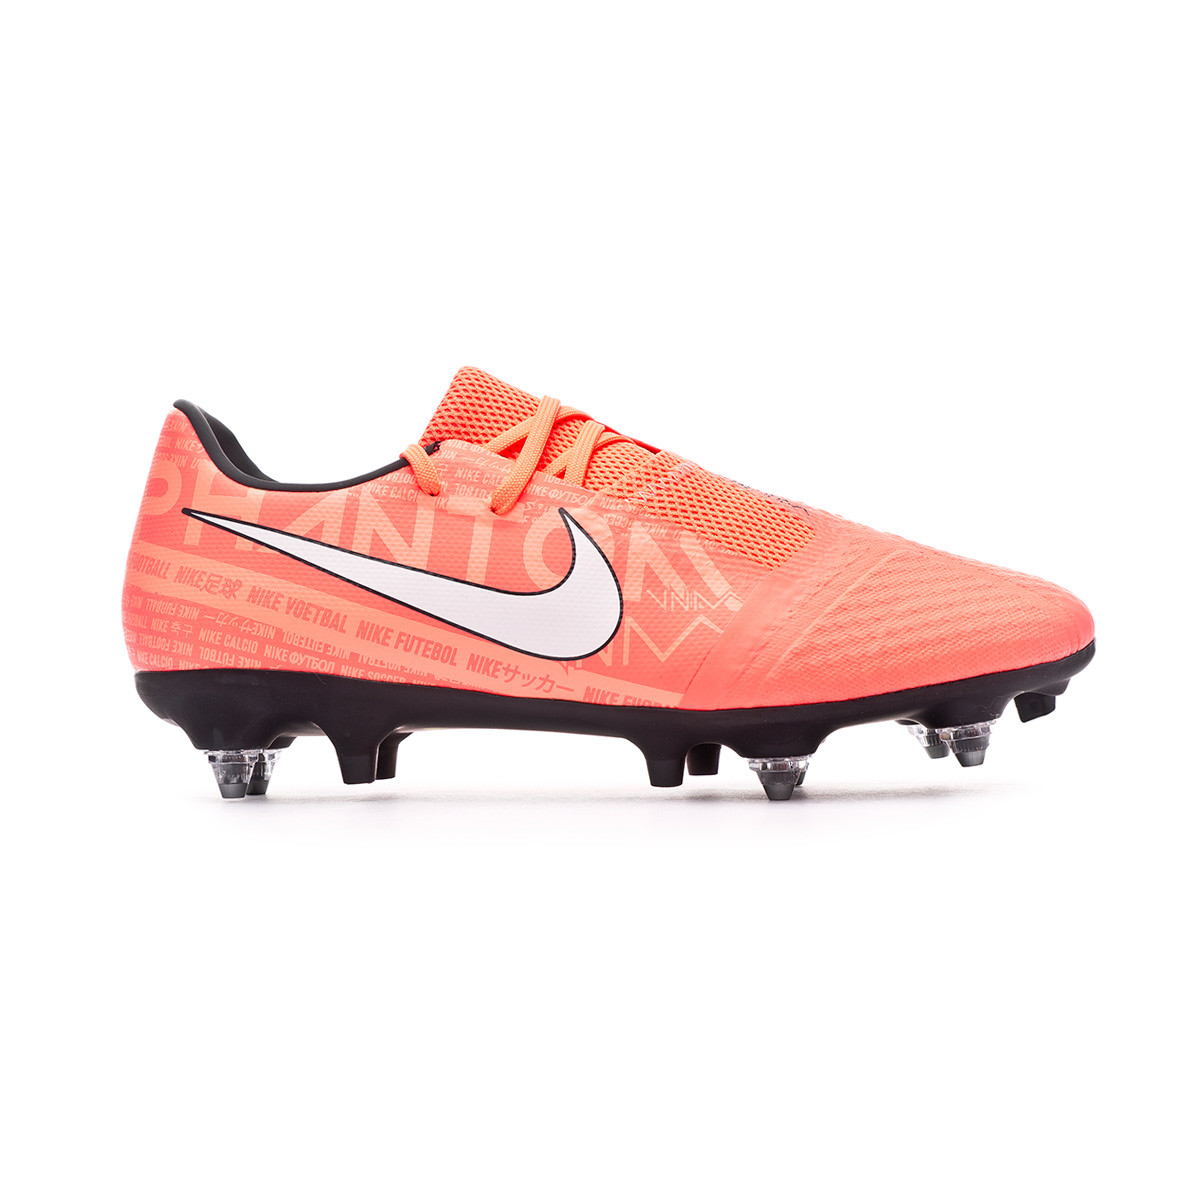 Chaussure de foot Nike Phantom Venom Academy SG Pro Anti Clog Traction